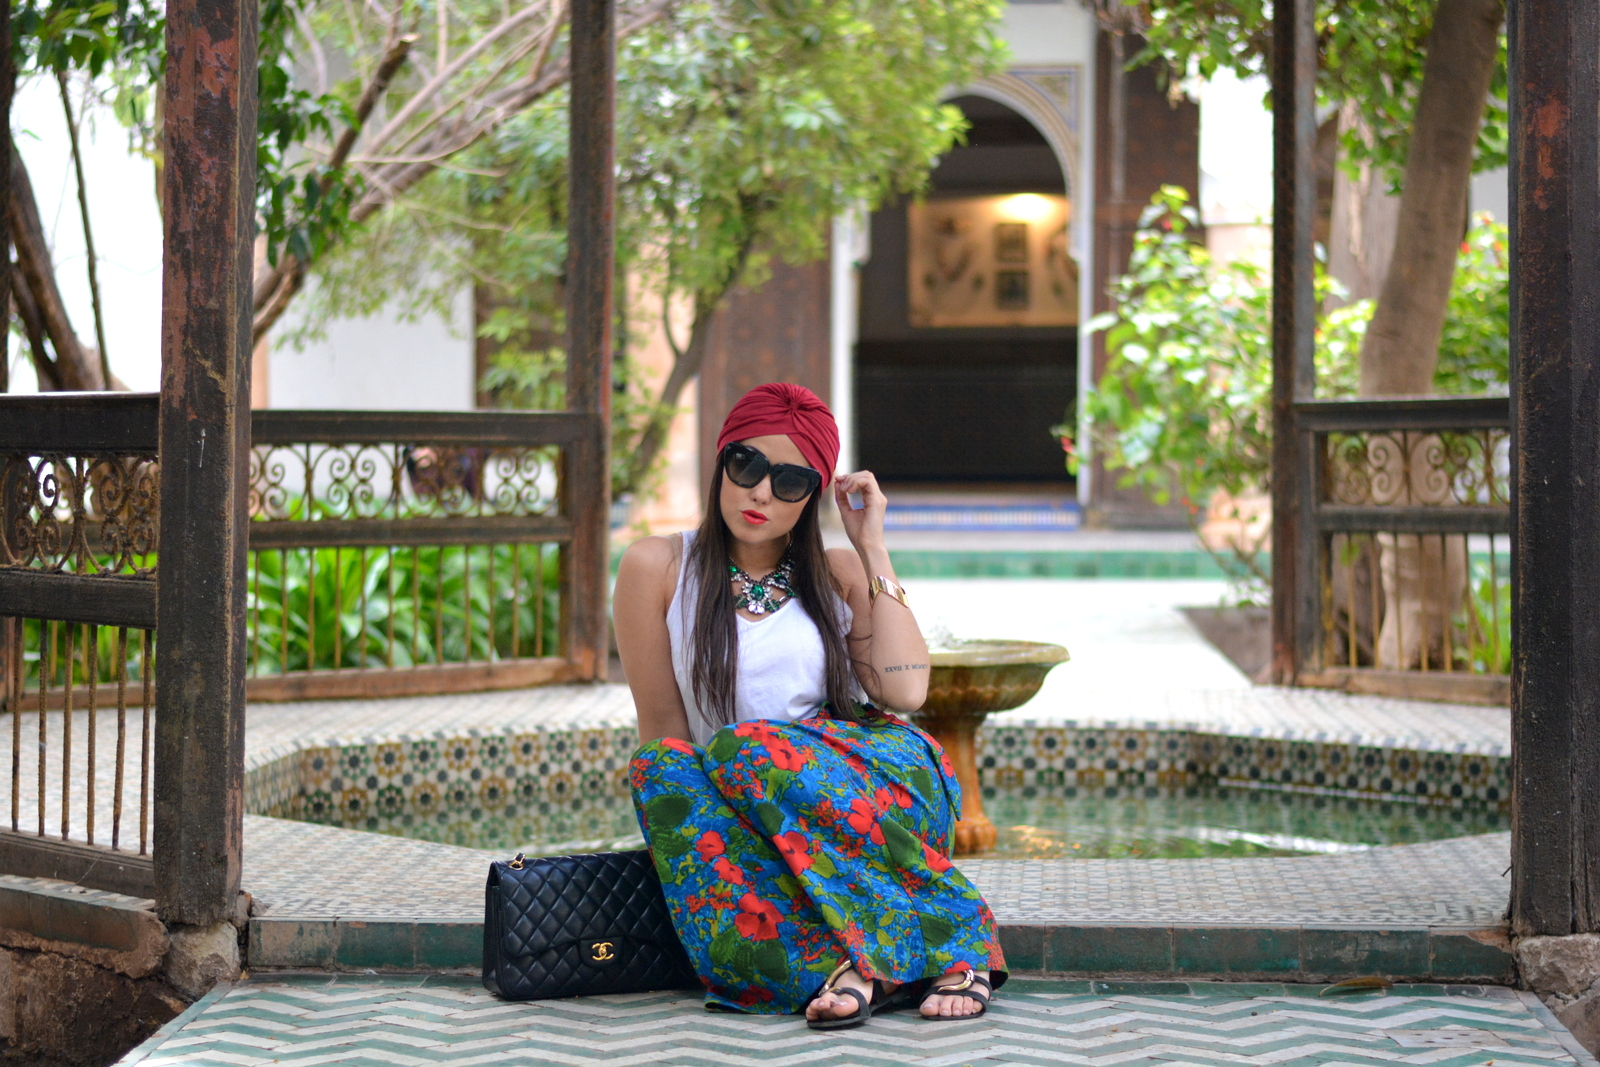 Jessica Neumann, Culture and Trend, outfit, Morocco, Chanel, Zara, Floral,